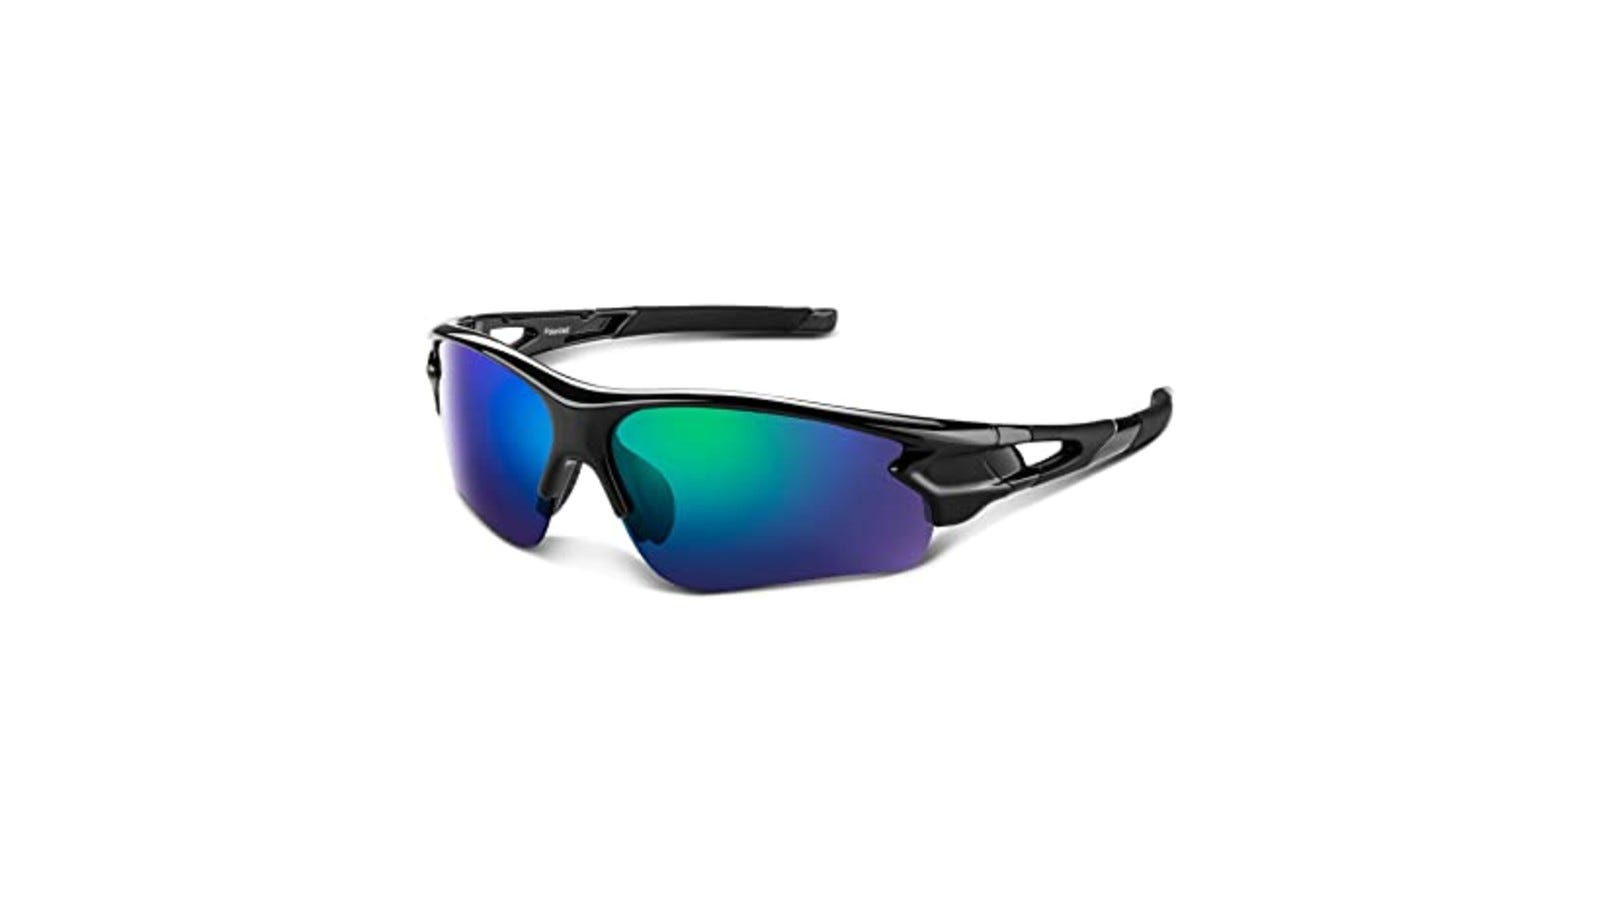 sporty sunglasses with blue lenses and a black plastic frame